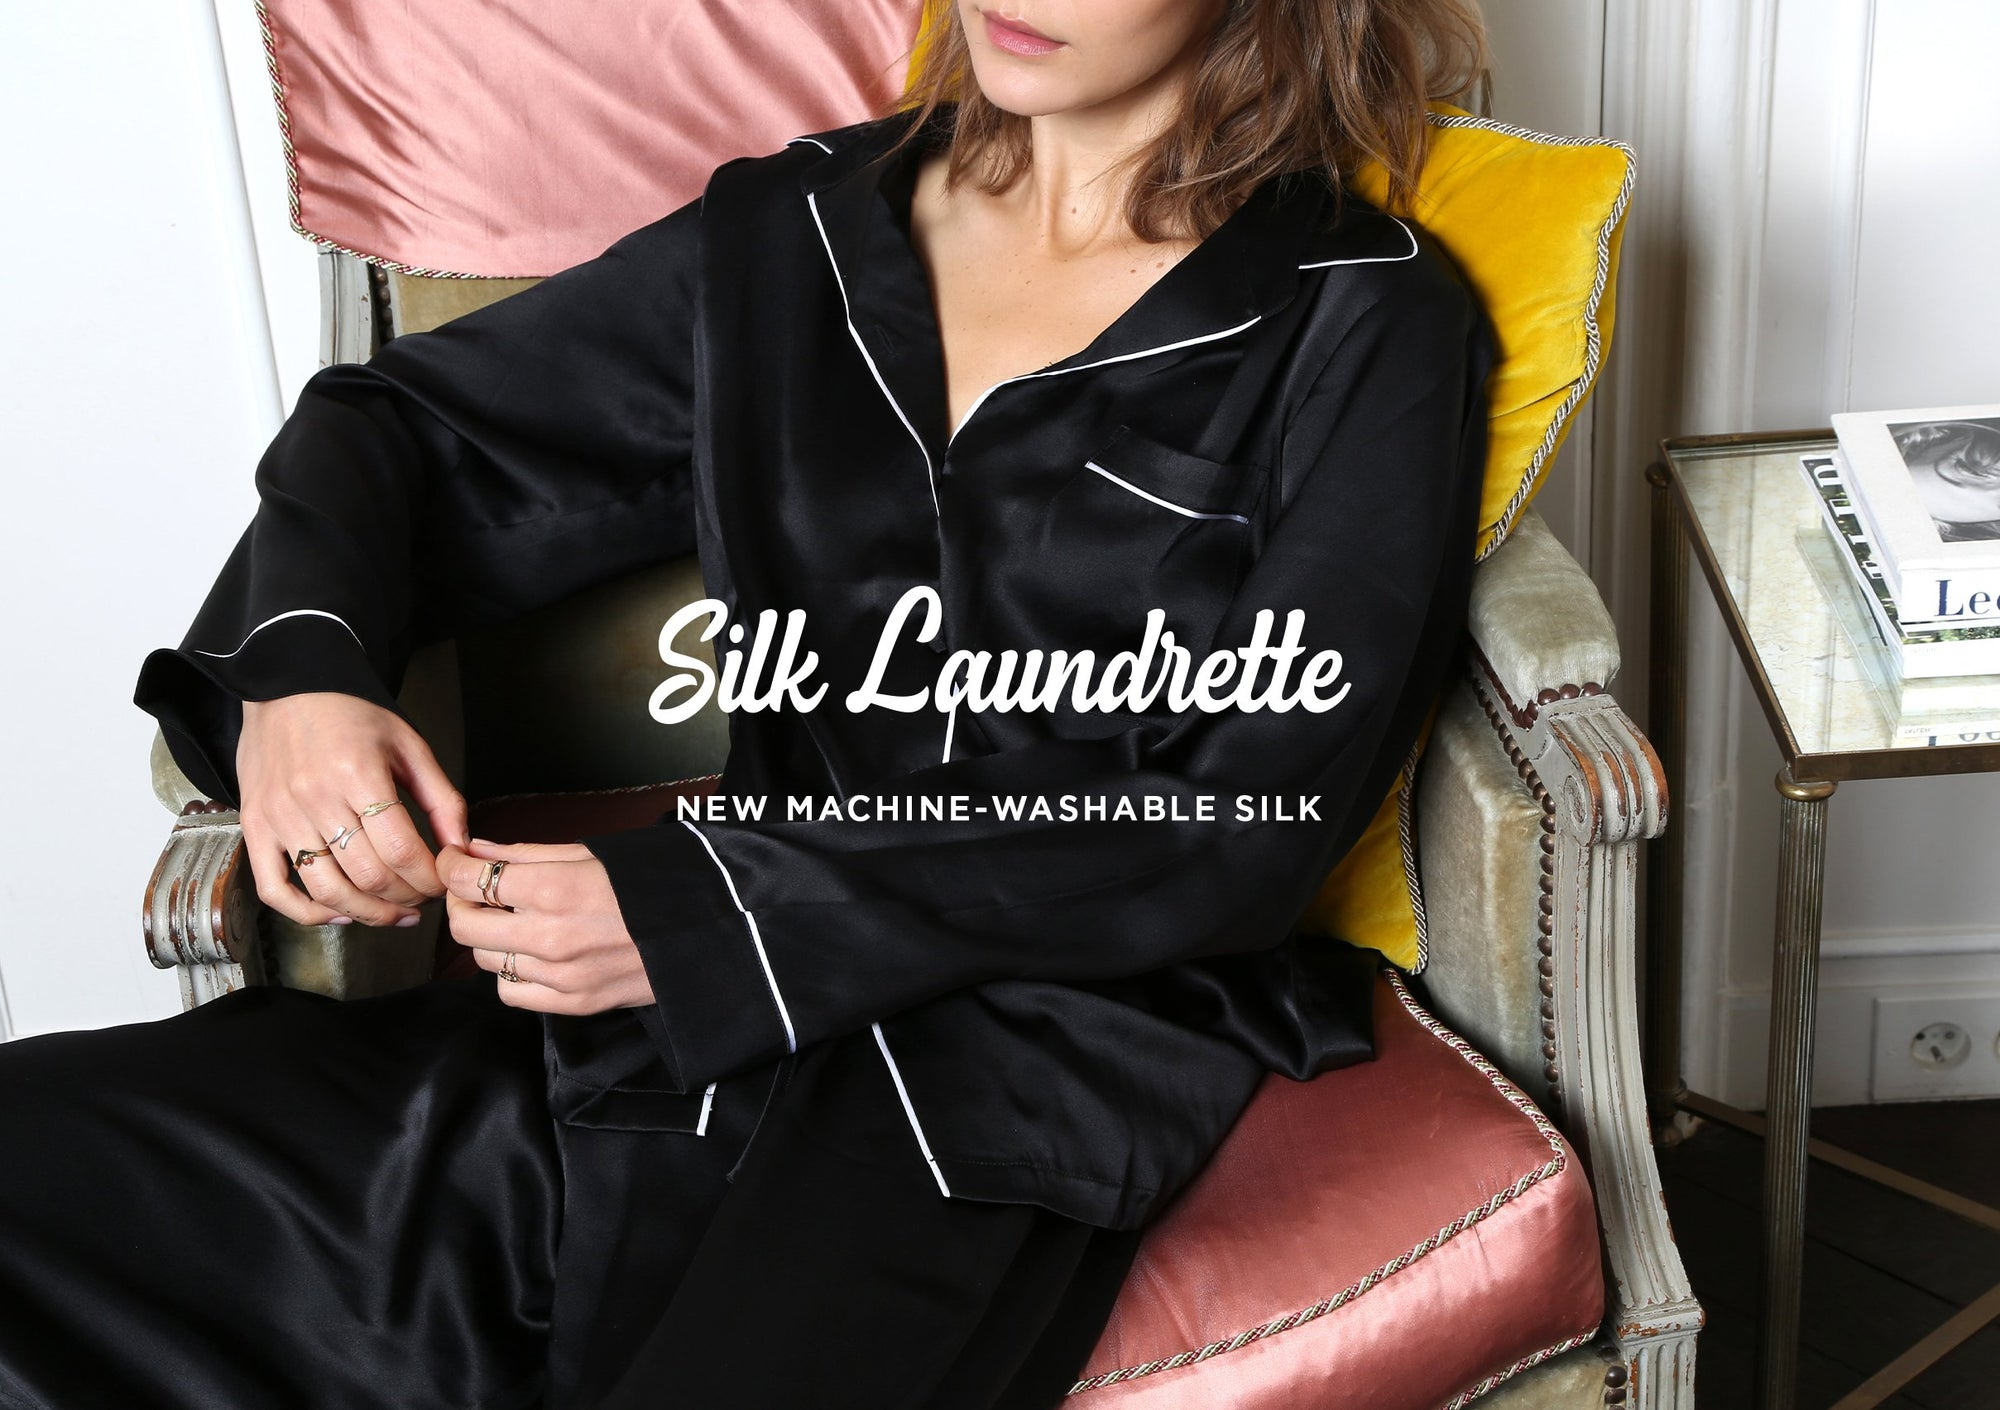 SILK LAUNDRETTE | Introducing our new machine-washable silk collection